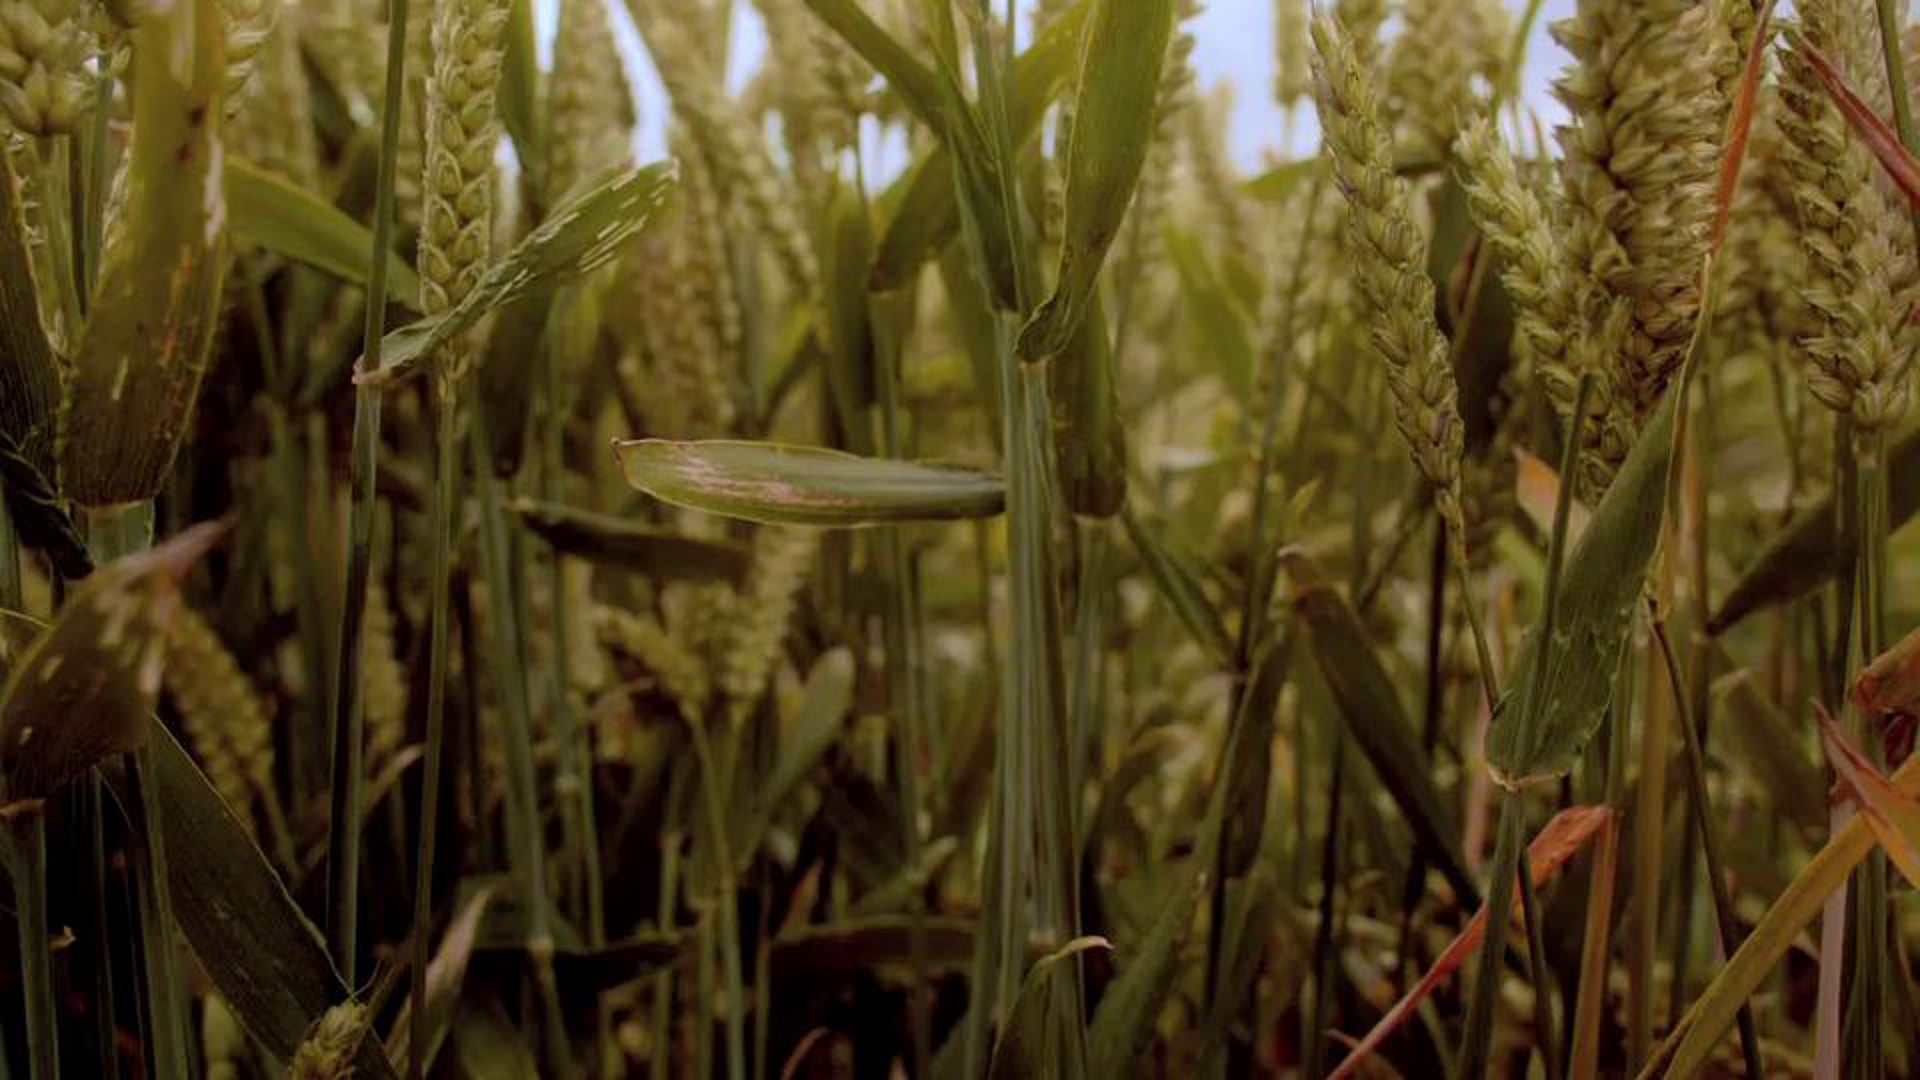 Dr Who-Cornfield sequence